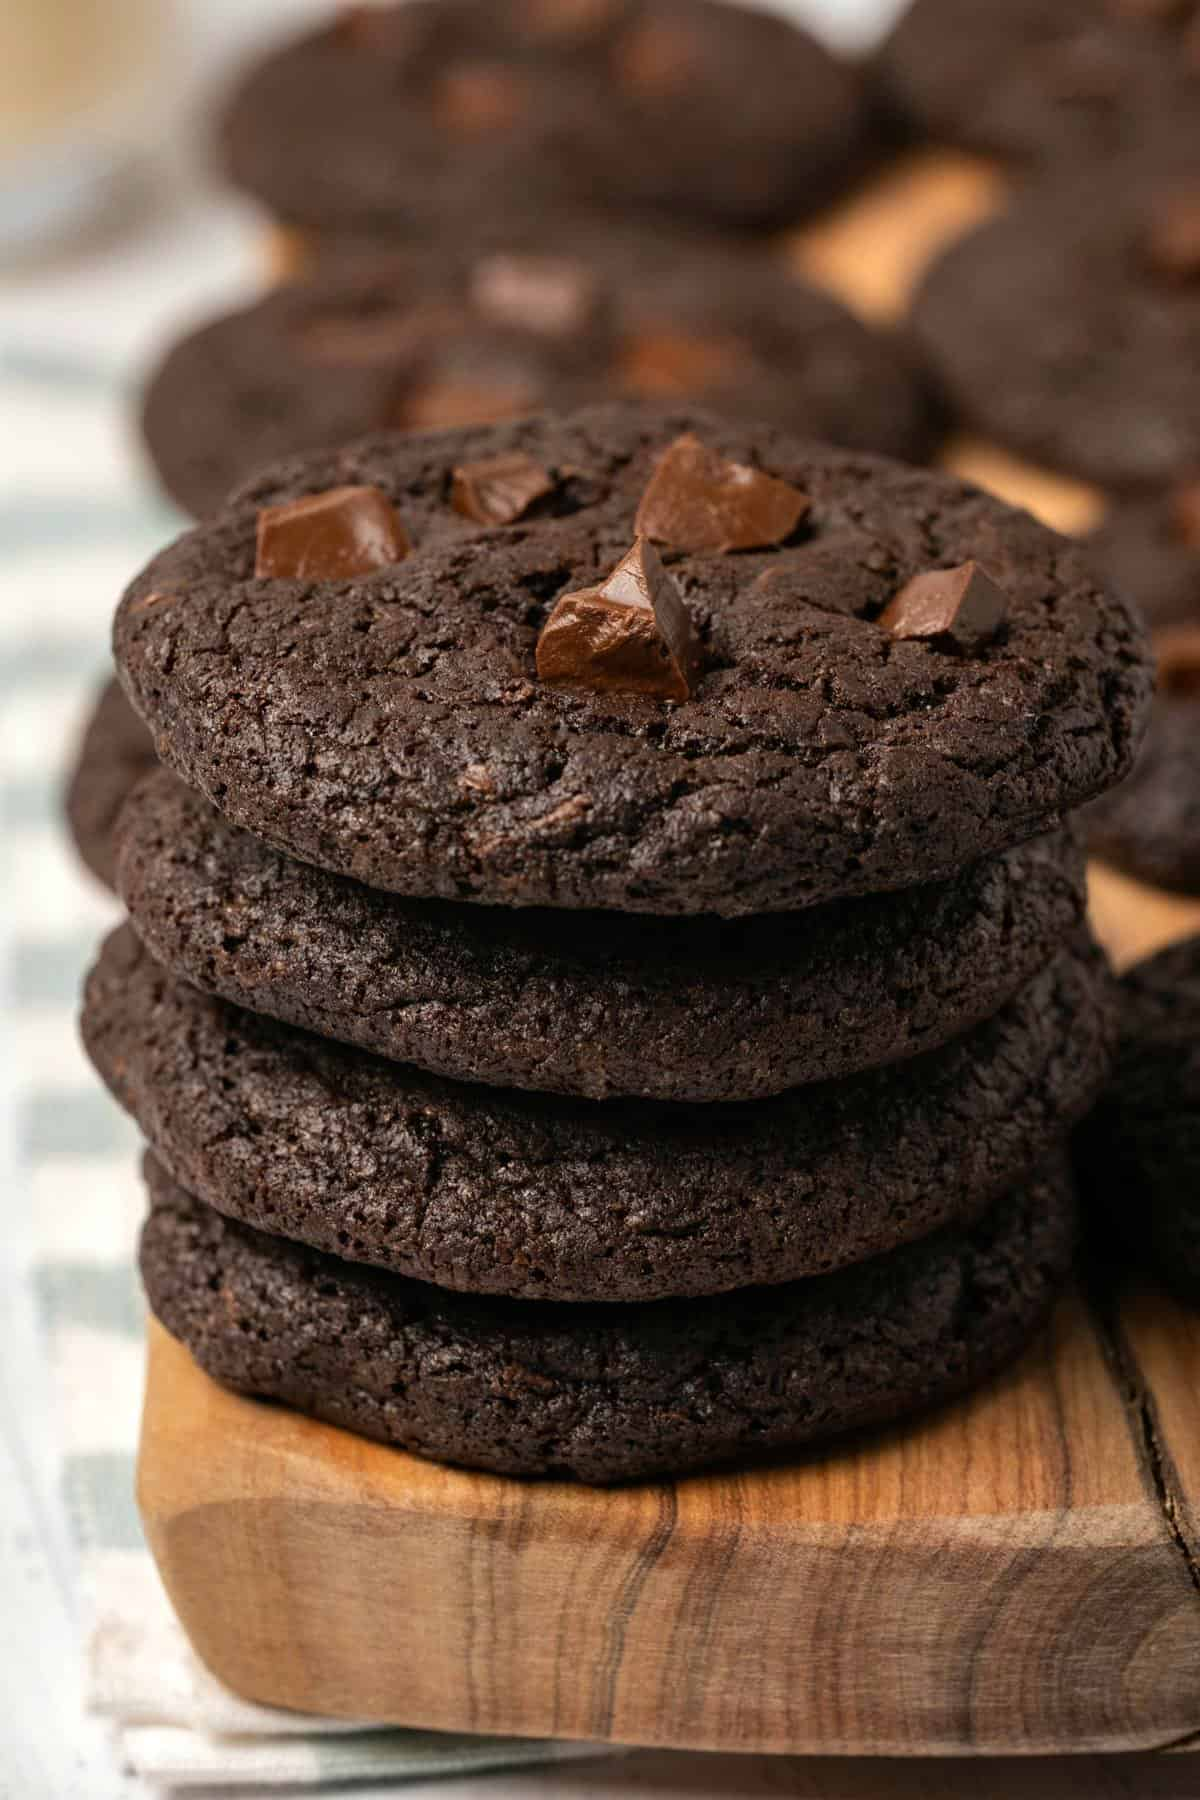 Chocolate cookies topped with chocolate chunks in a stack.